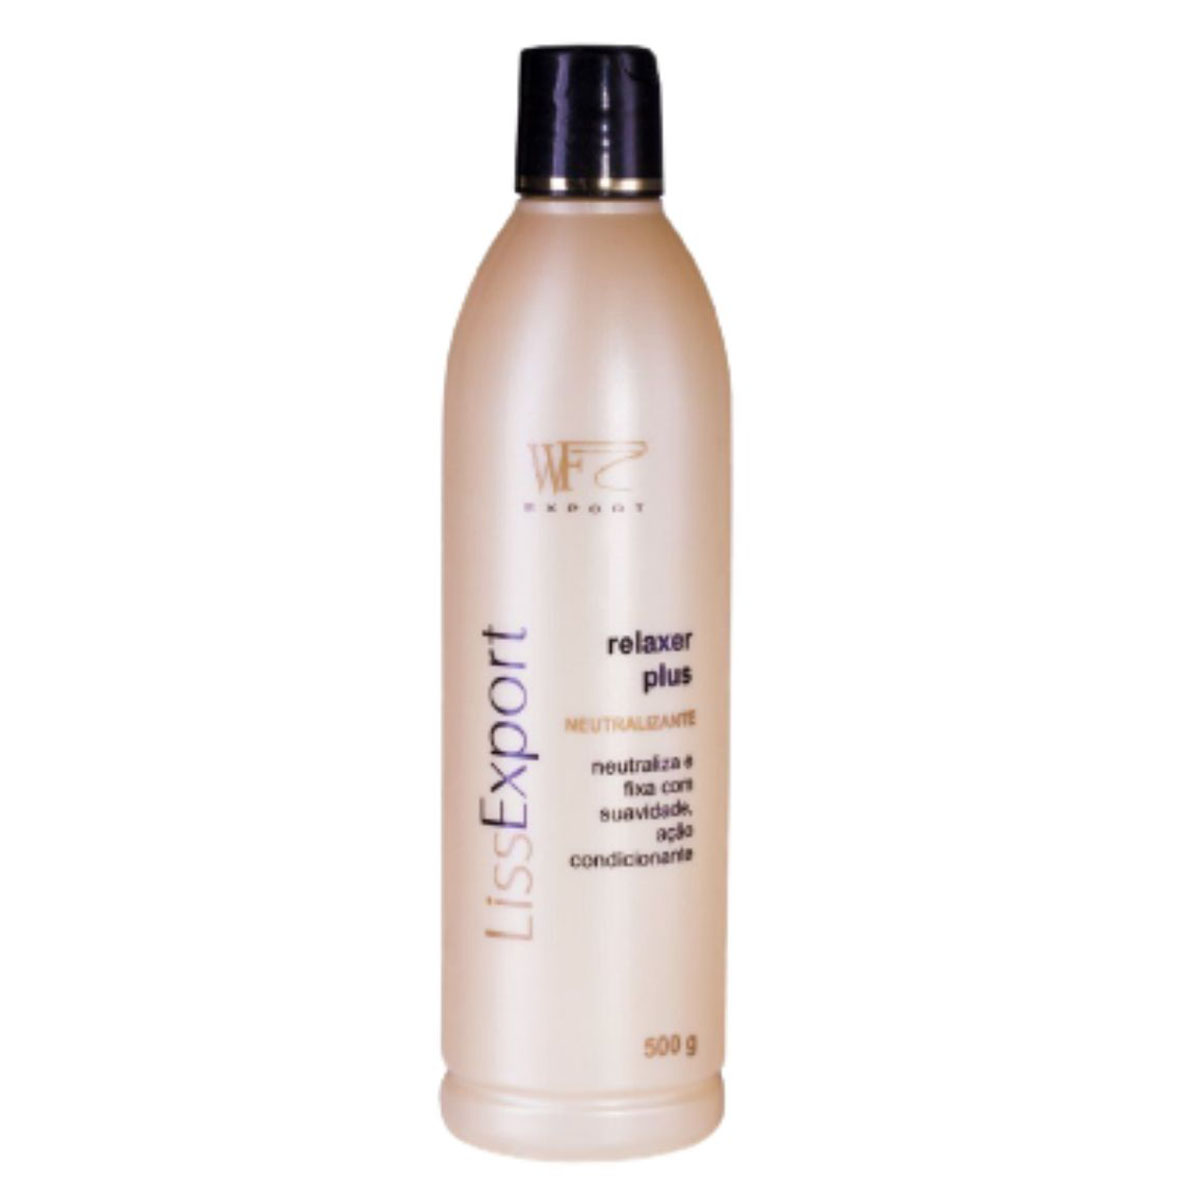 LISS EXPORT - RELAXER PLUS NEUTRALIZANTE WF COSMETICOS 500G